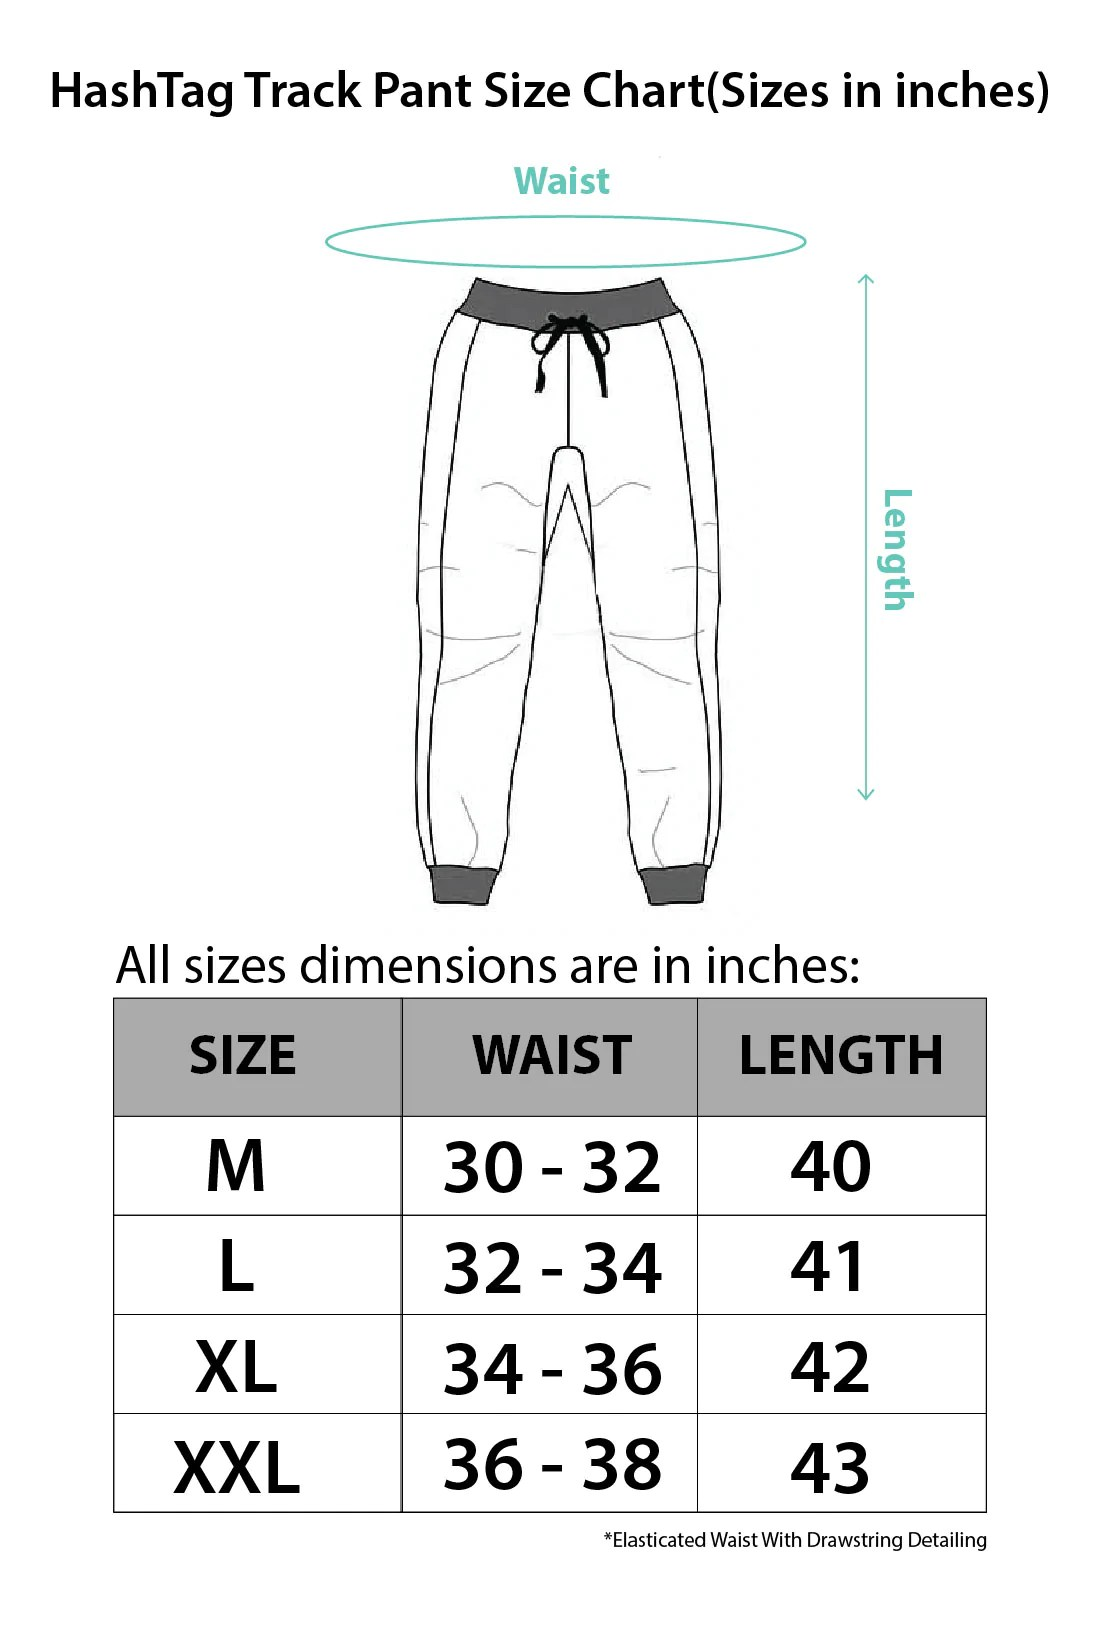 Olympia india trackpant joggers size chart also gym for men special edition rh hashtagstore